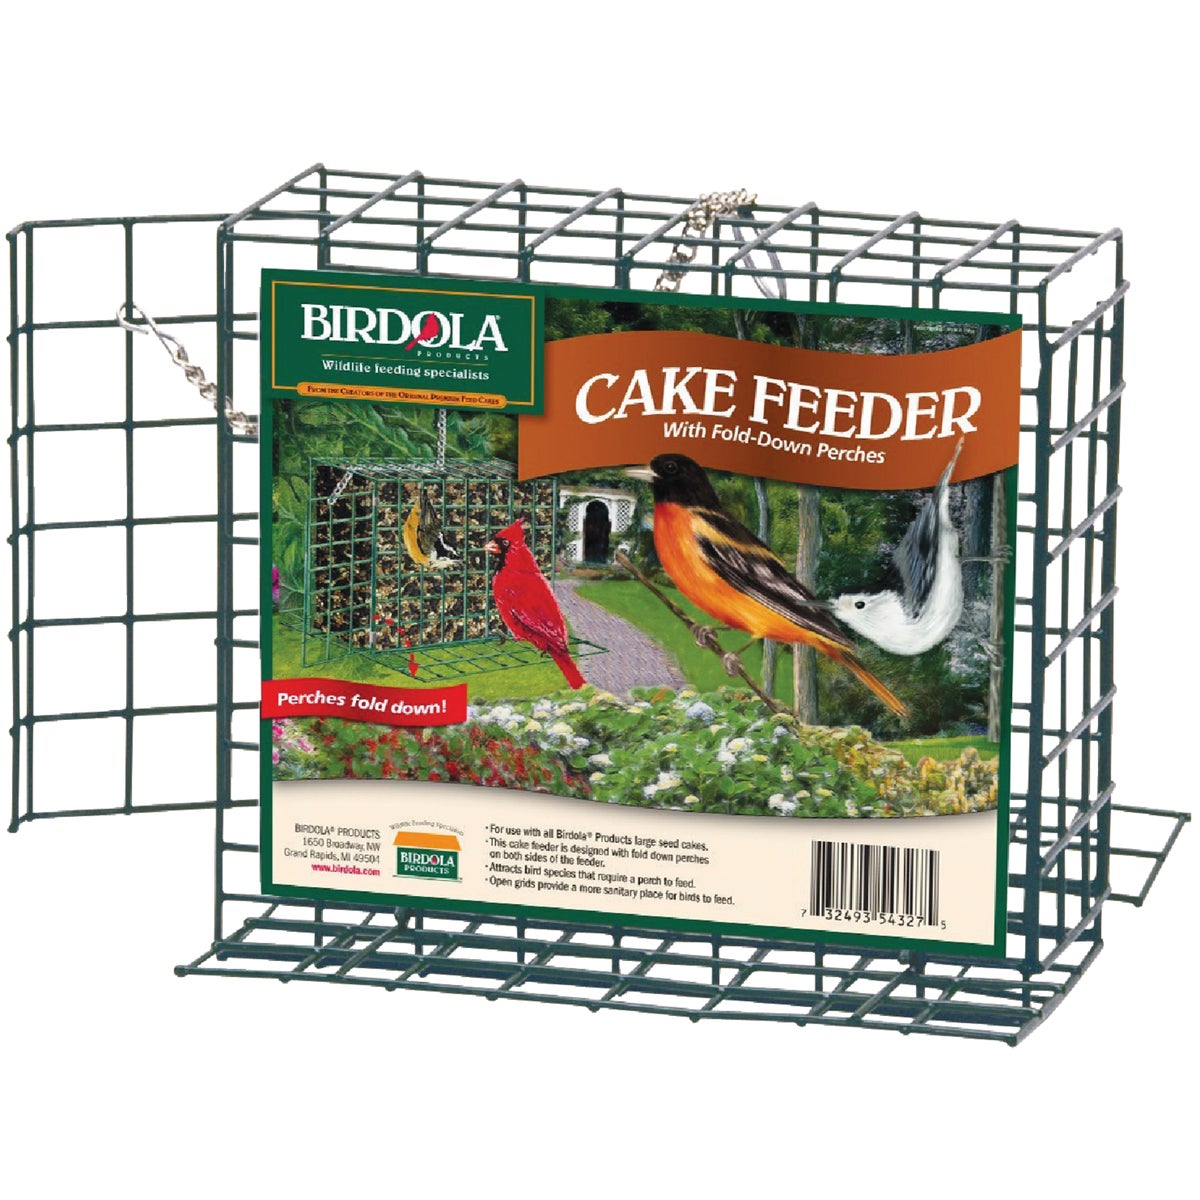 LARGE SNACK CAKE FEEDER - 54327 by United Pet Group